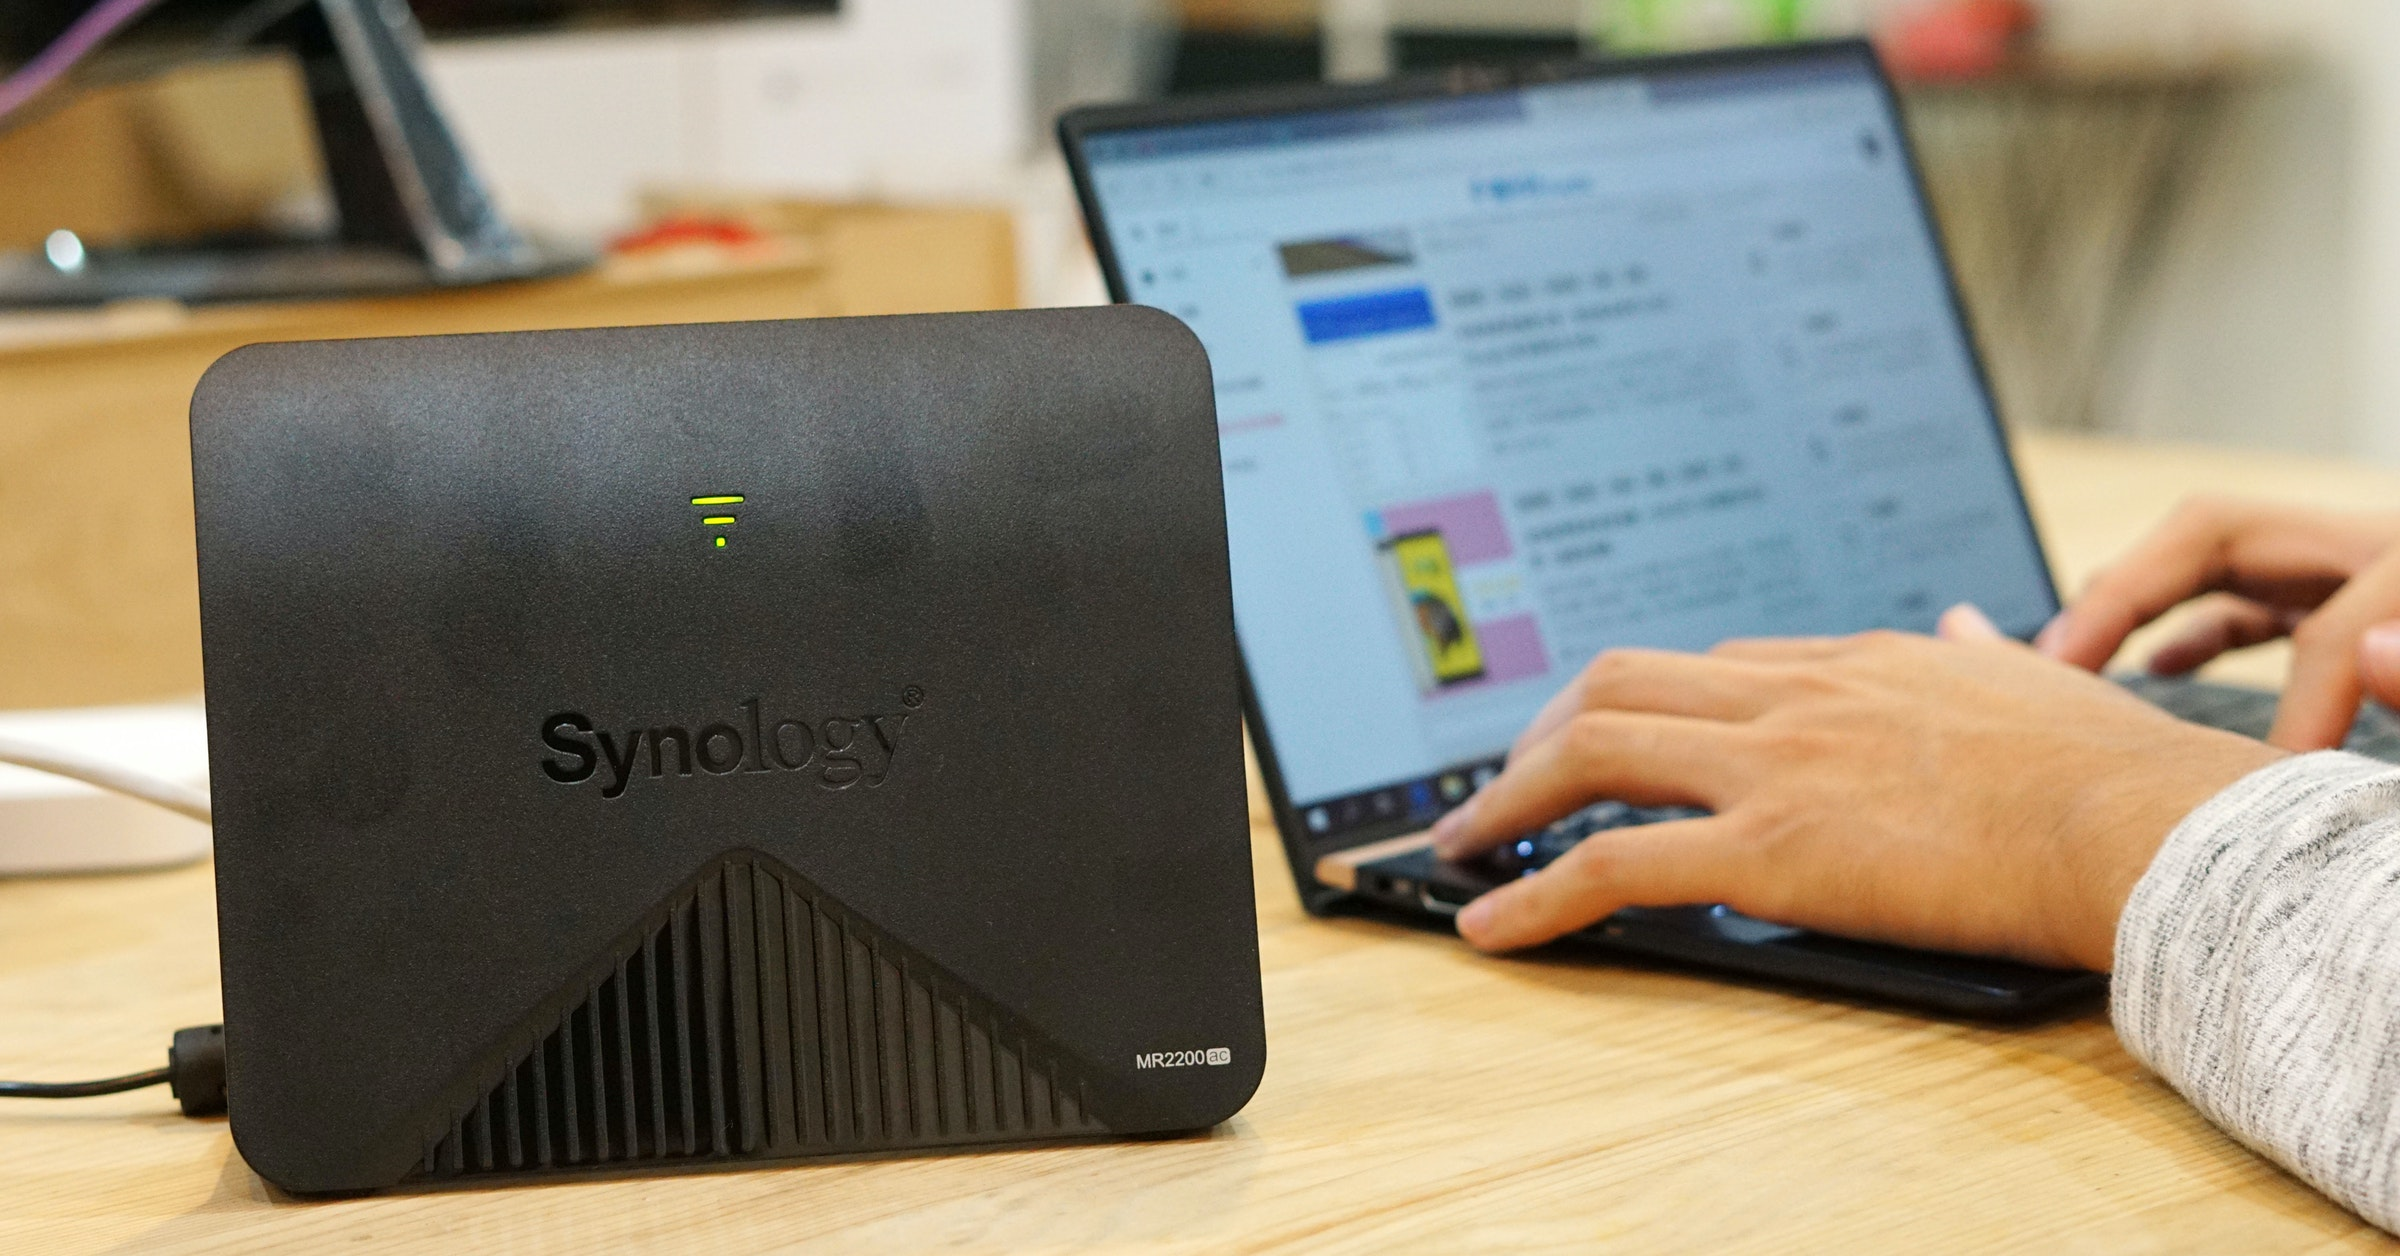 Netbook, Synology MR2200AC Mesh Wireless Router, Router, Wi-Fi, Mesh networking, Synology Inc., Synology RT2600ac, 瘾科技, Wireless network, Internet, netbook, Laptop, Electronic device, Technology, Netbook, Gadget, Personal computer, Computer